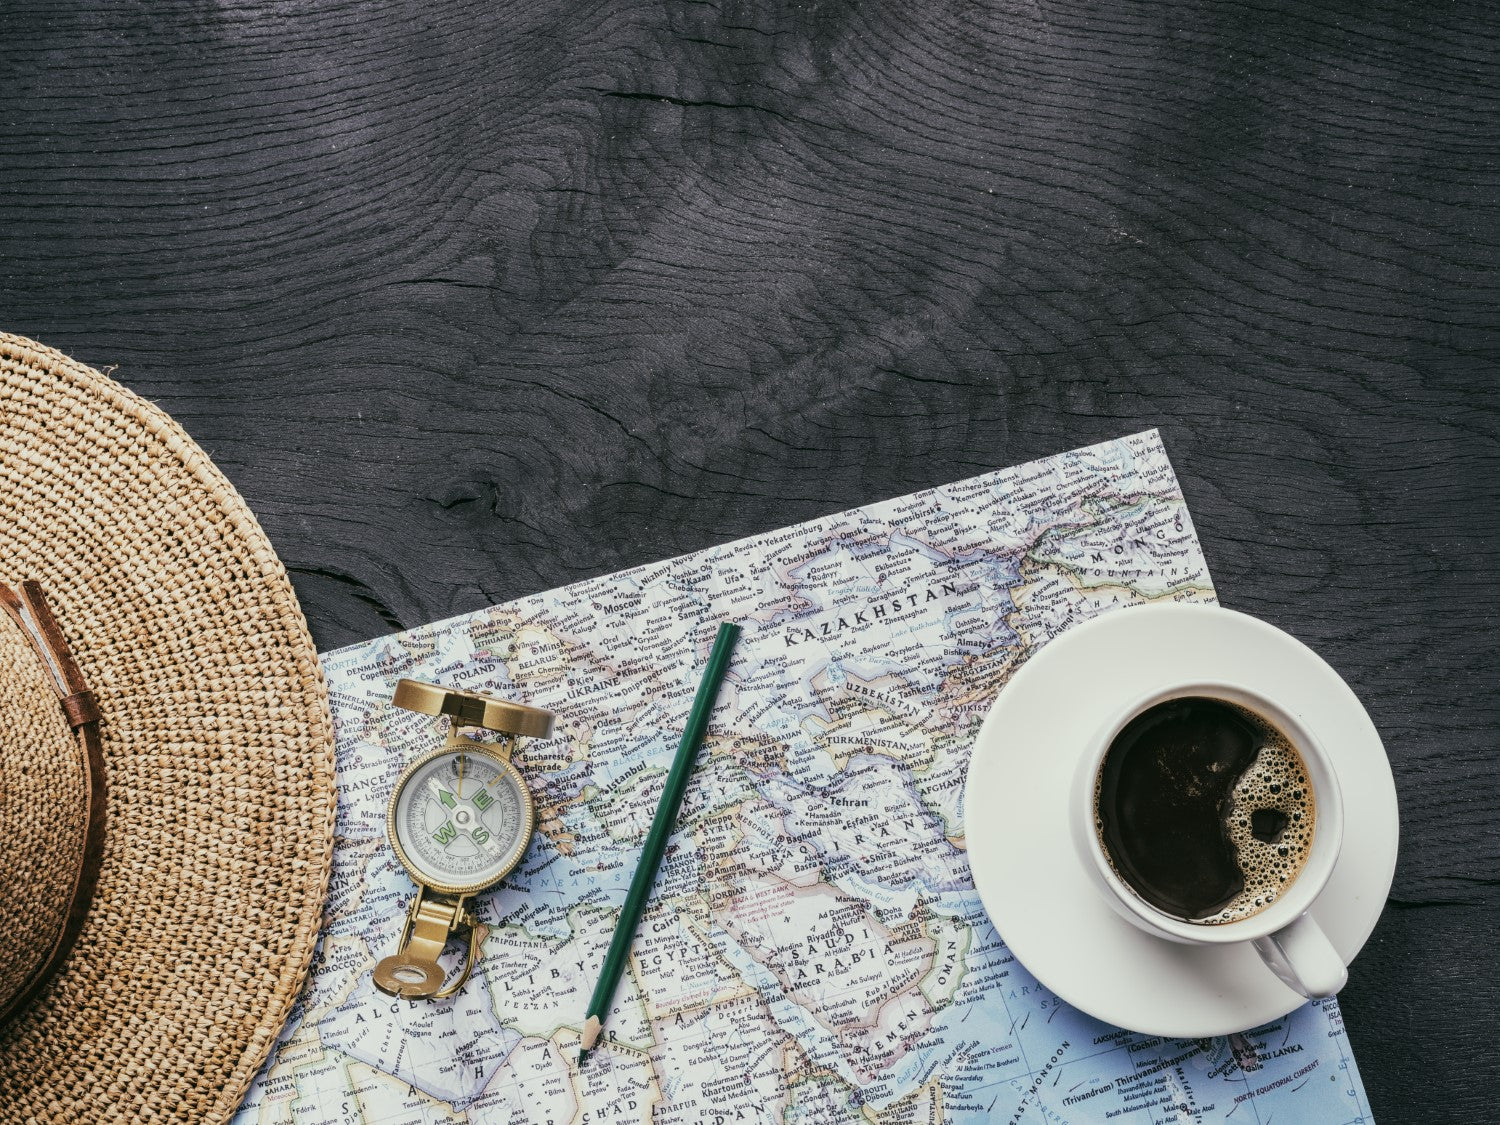 coffee, world map, hat and compass